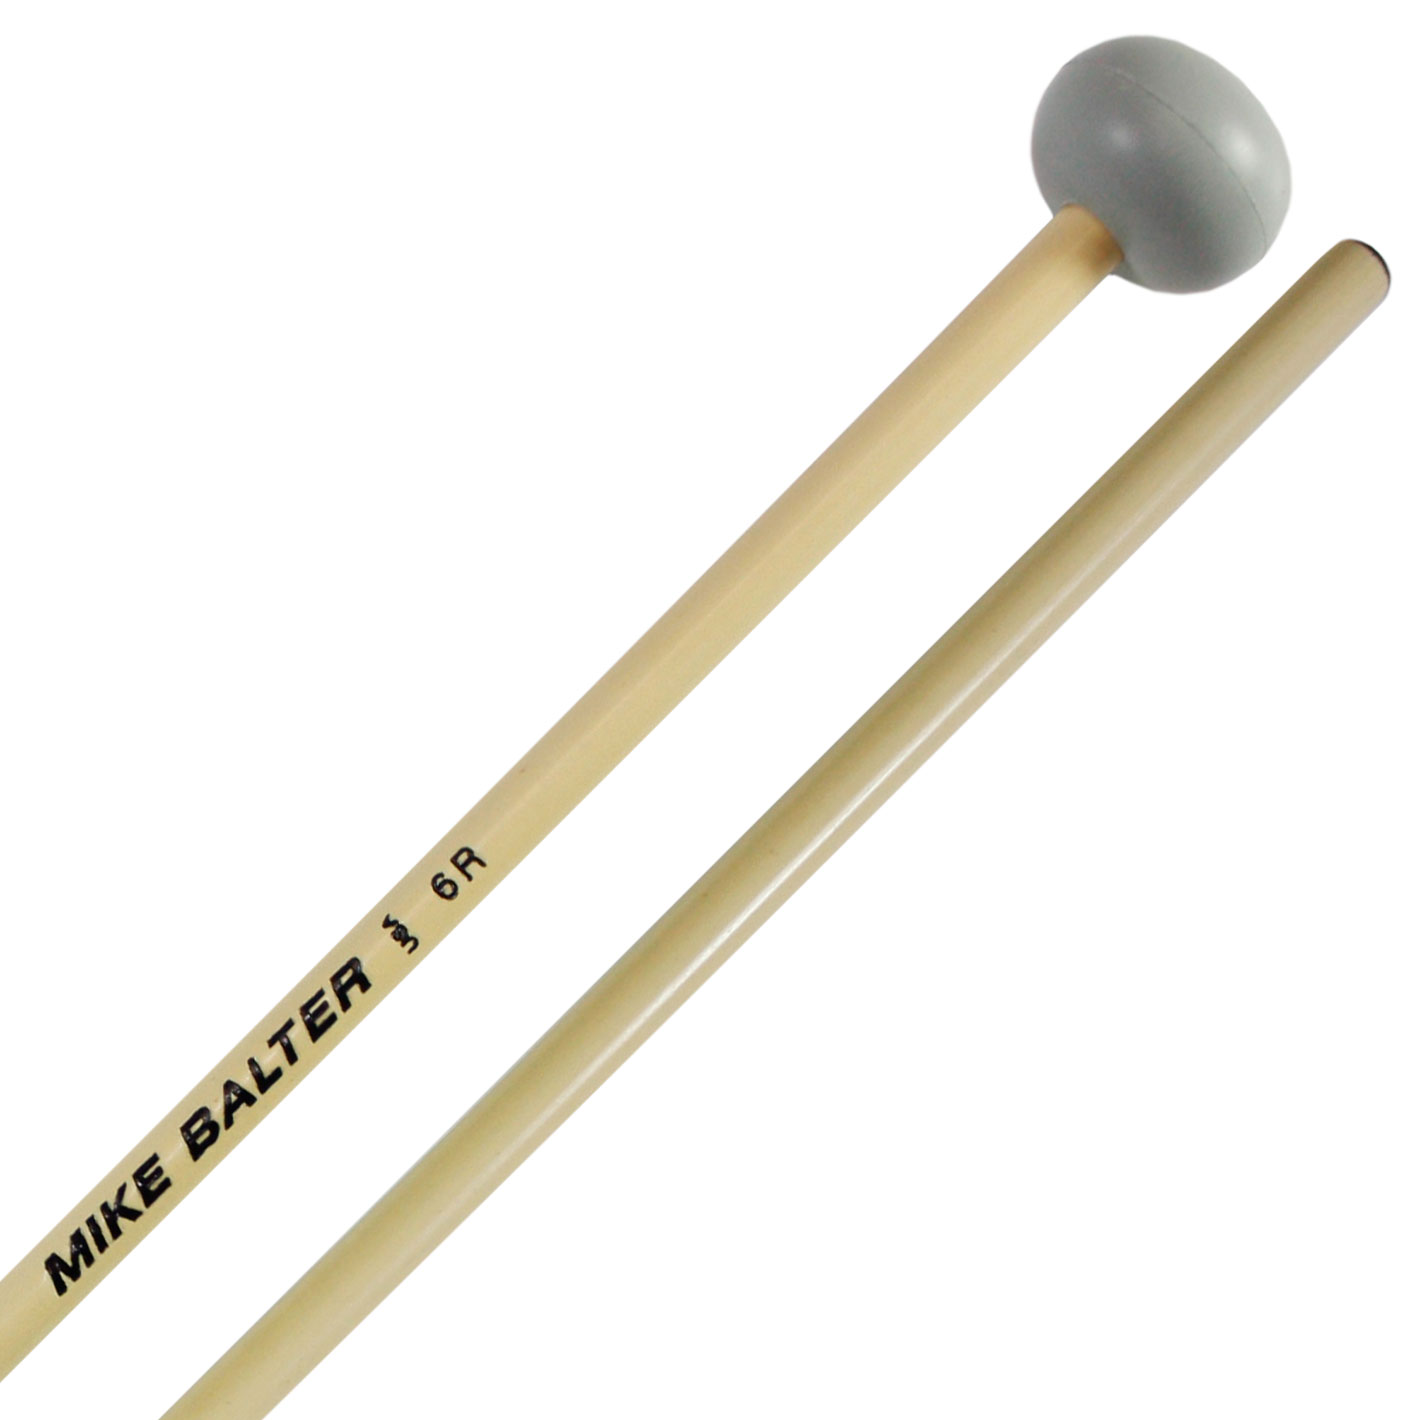 Mike Balter Unwound Hard Rubber Xylophone Mallets with Rattan Handles